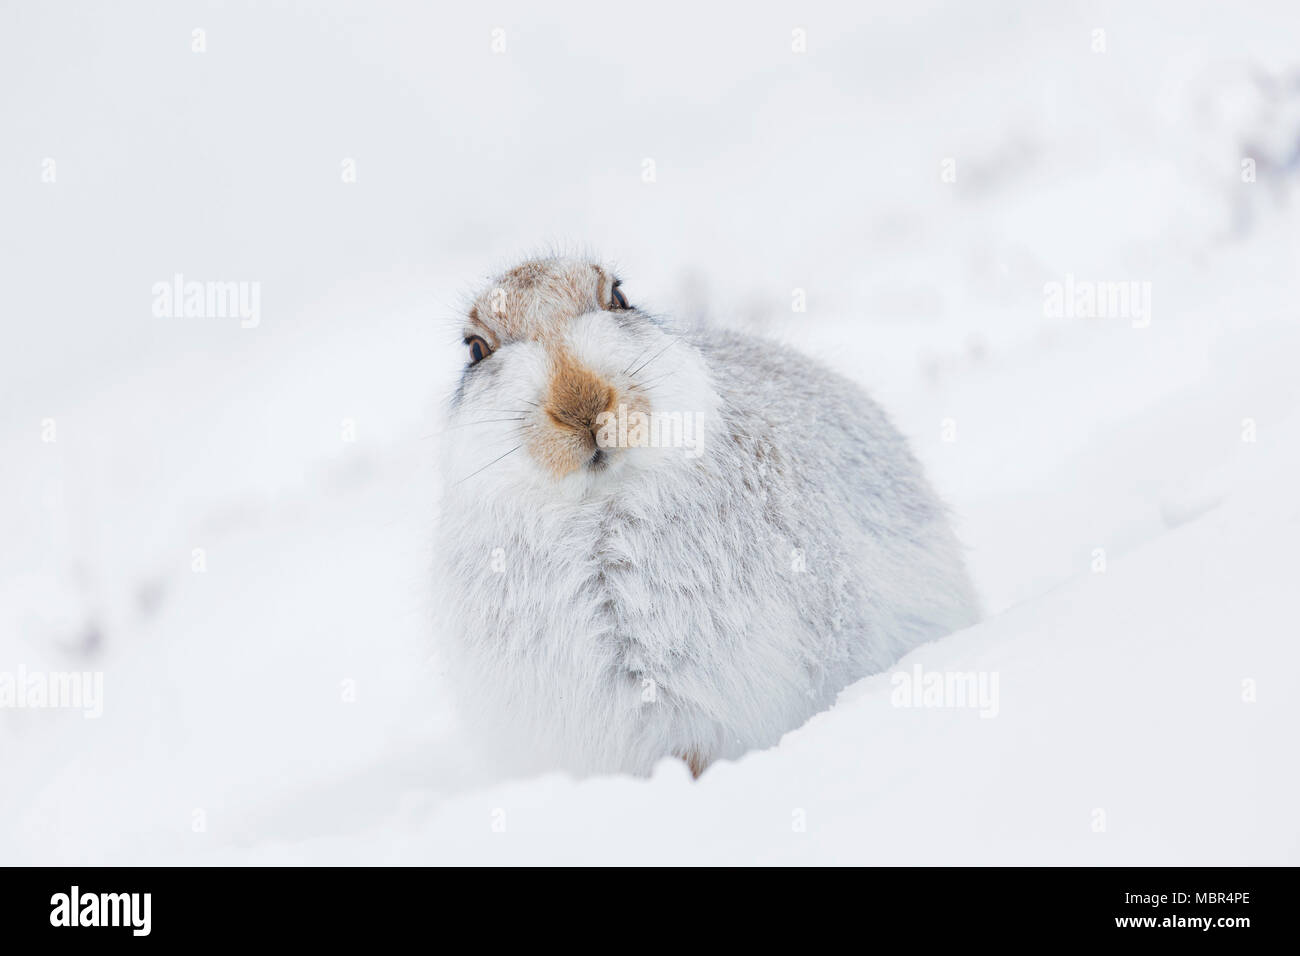 Mountain hare / Alpine hare / snow hare (Lepus timidus) in white winter pelage resting in the snow with flattened ears - Stock Image